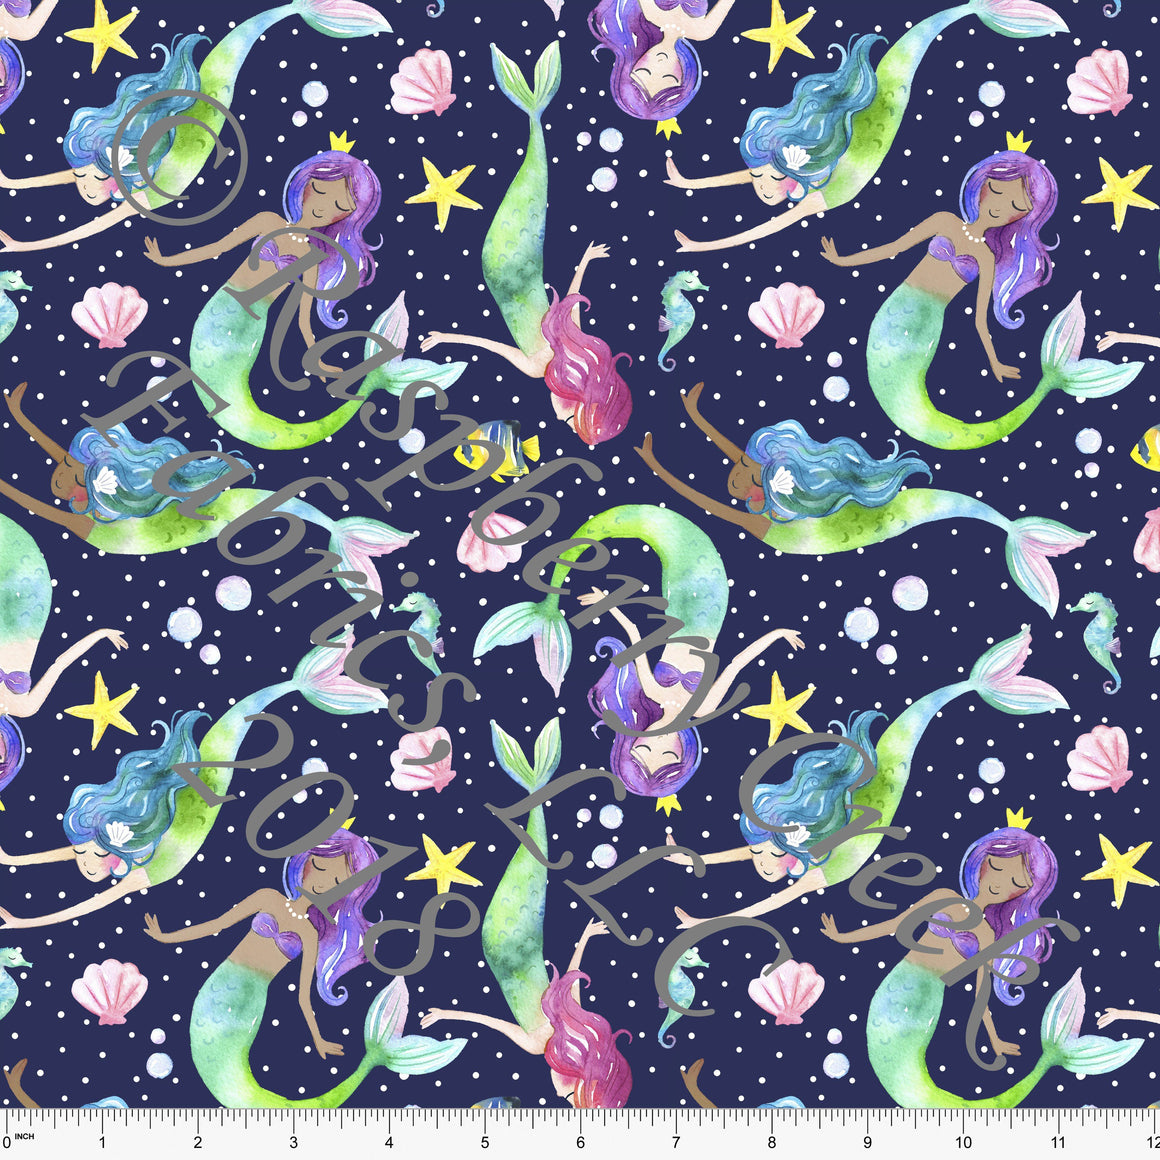 Navy Blue Pink Purple and Teal Mermaid 4 Way Stretch MATTE SWIM Knit Fabric, By Ella Randall For Club Fabrics